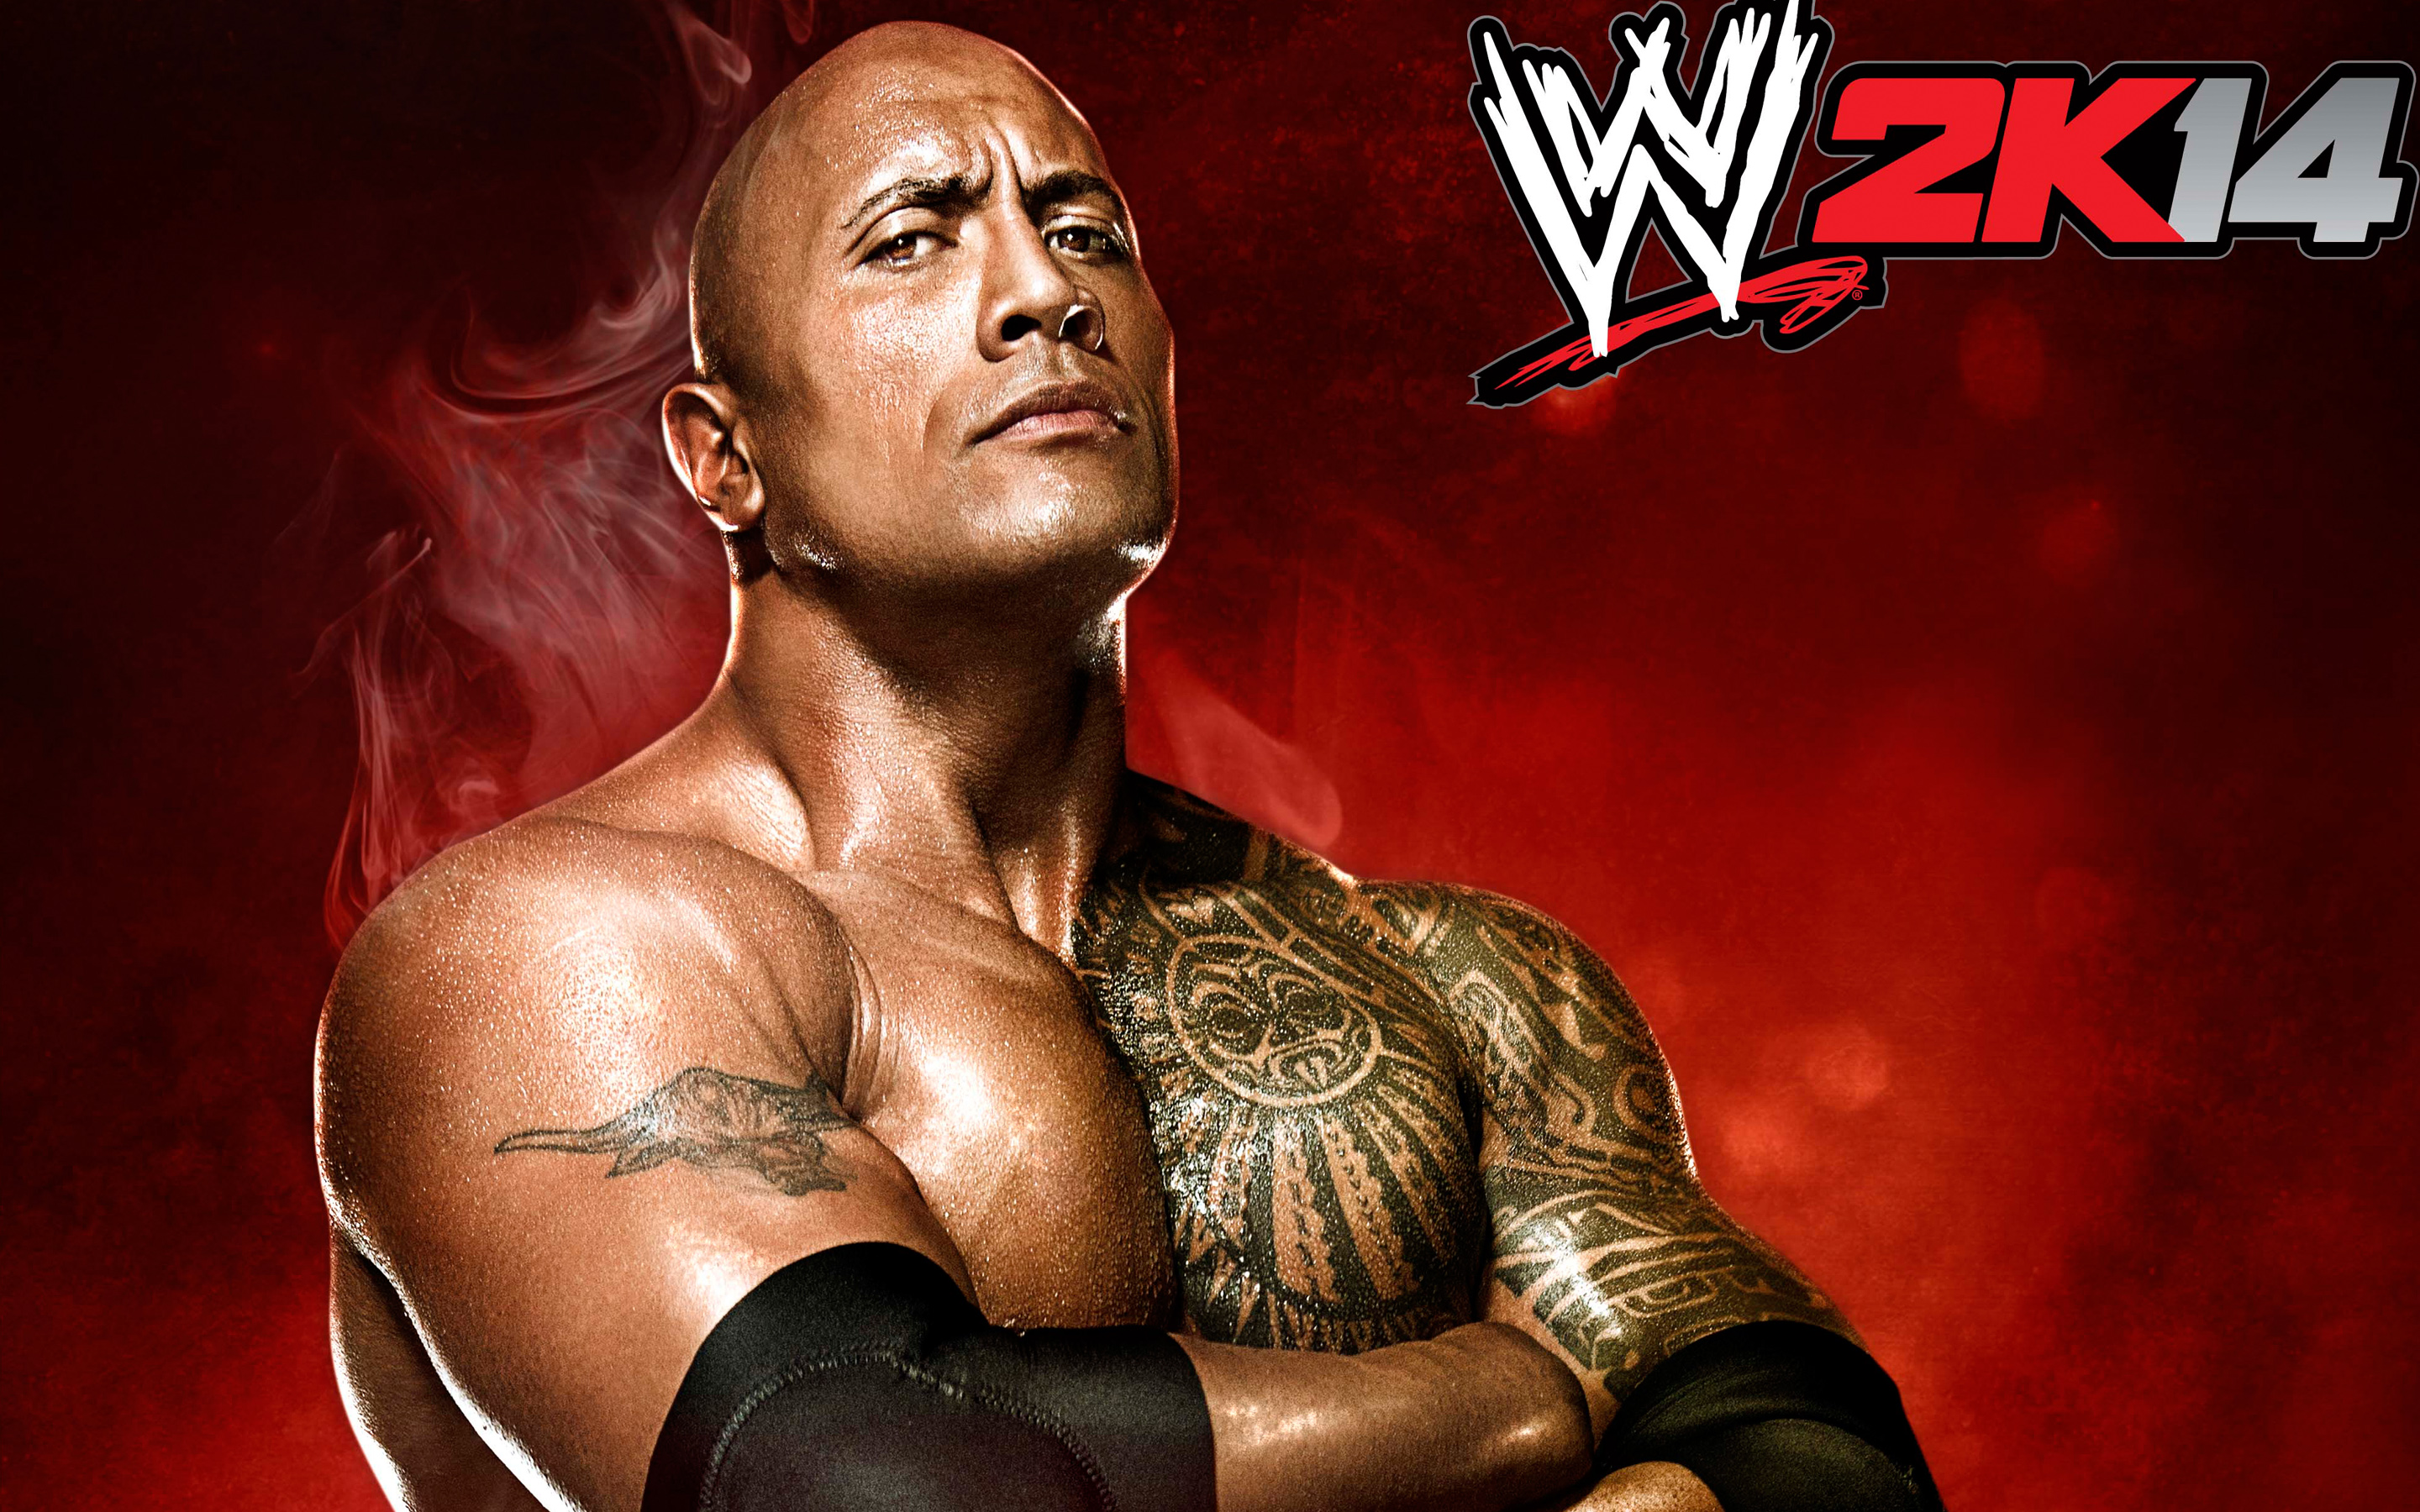 WWE 2K14 Game Wallpapers HD 2880x1800